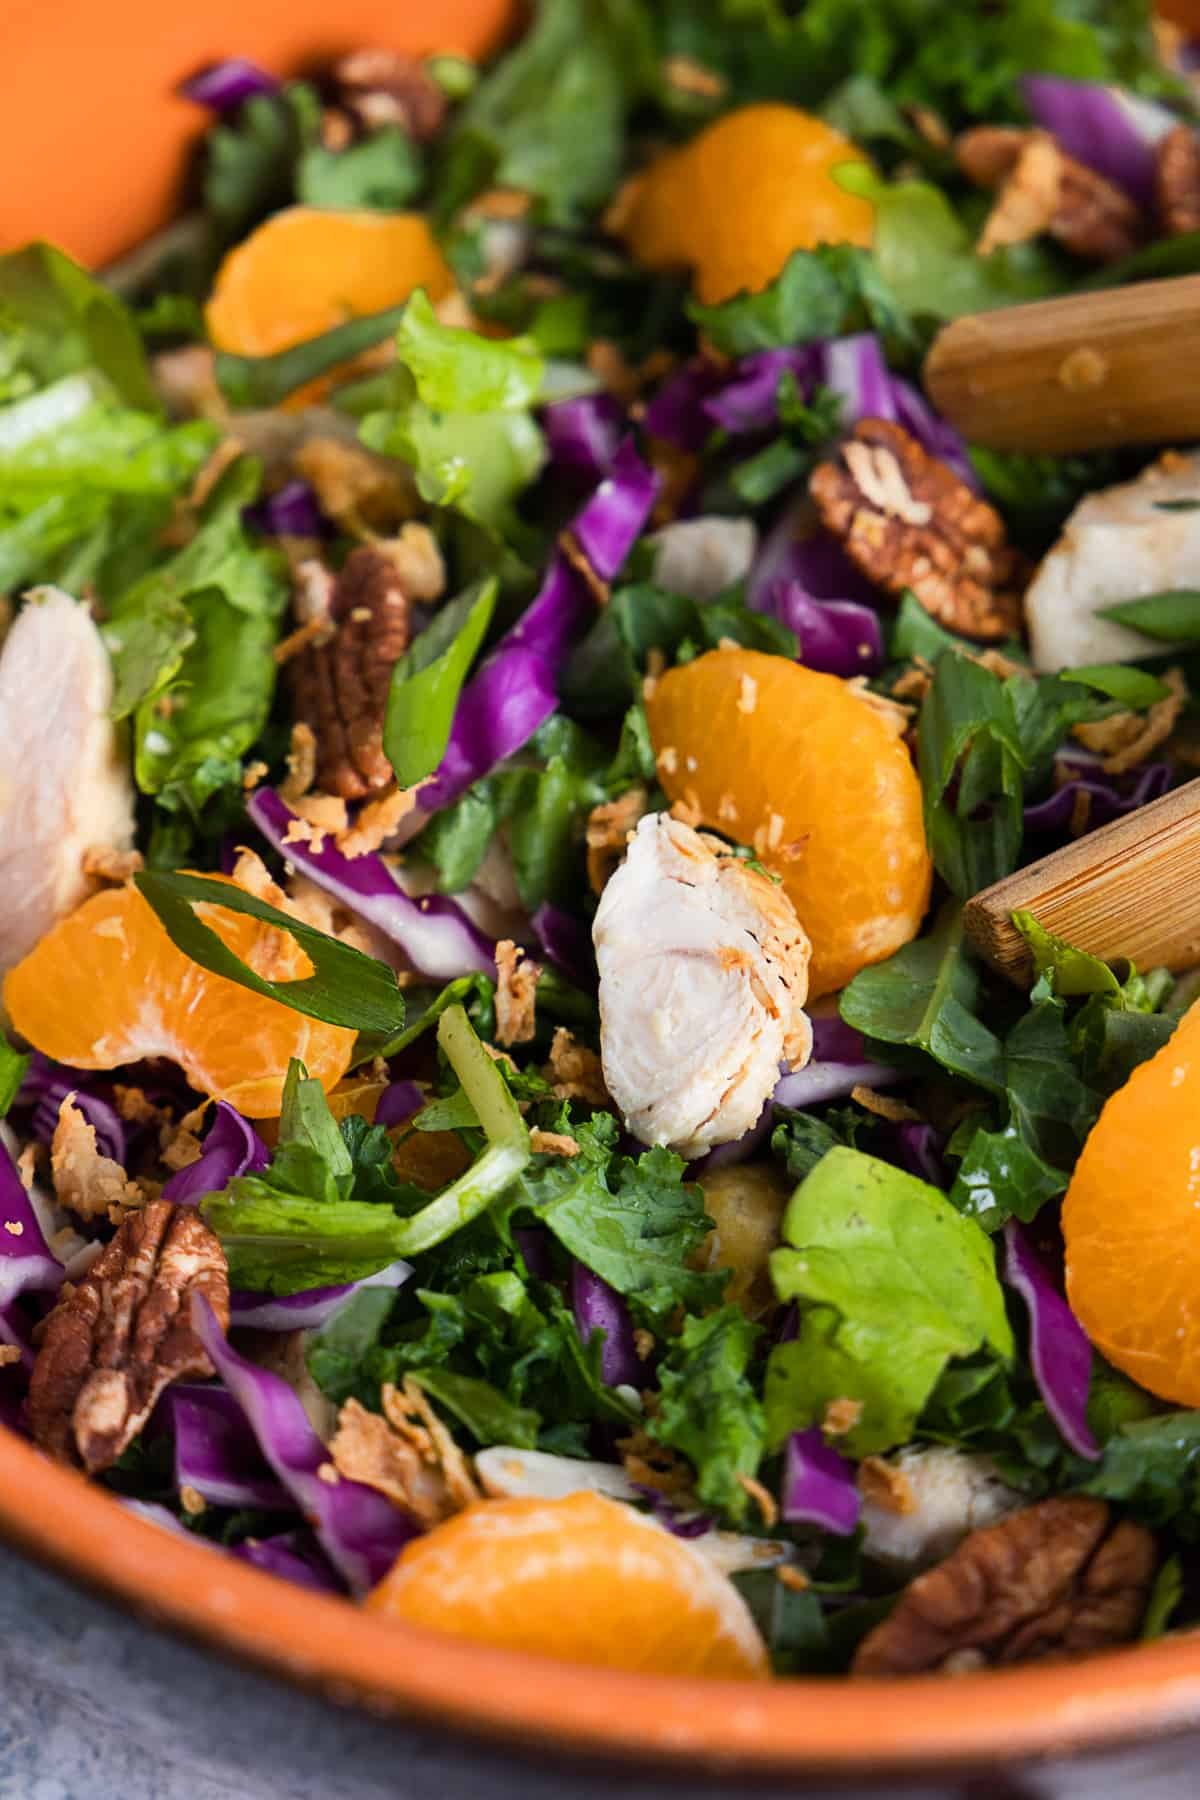 Close up of the salad featuring mandarin, chicken, red cabbage, lettuce and kale